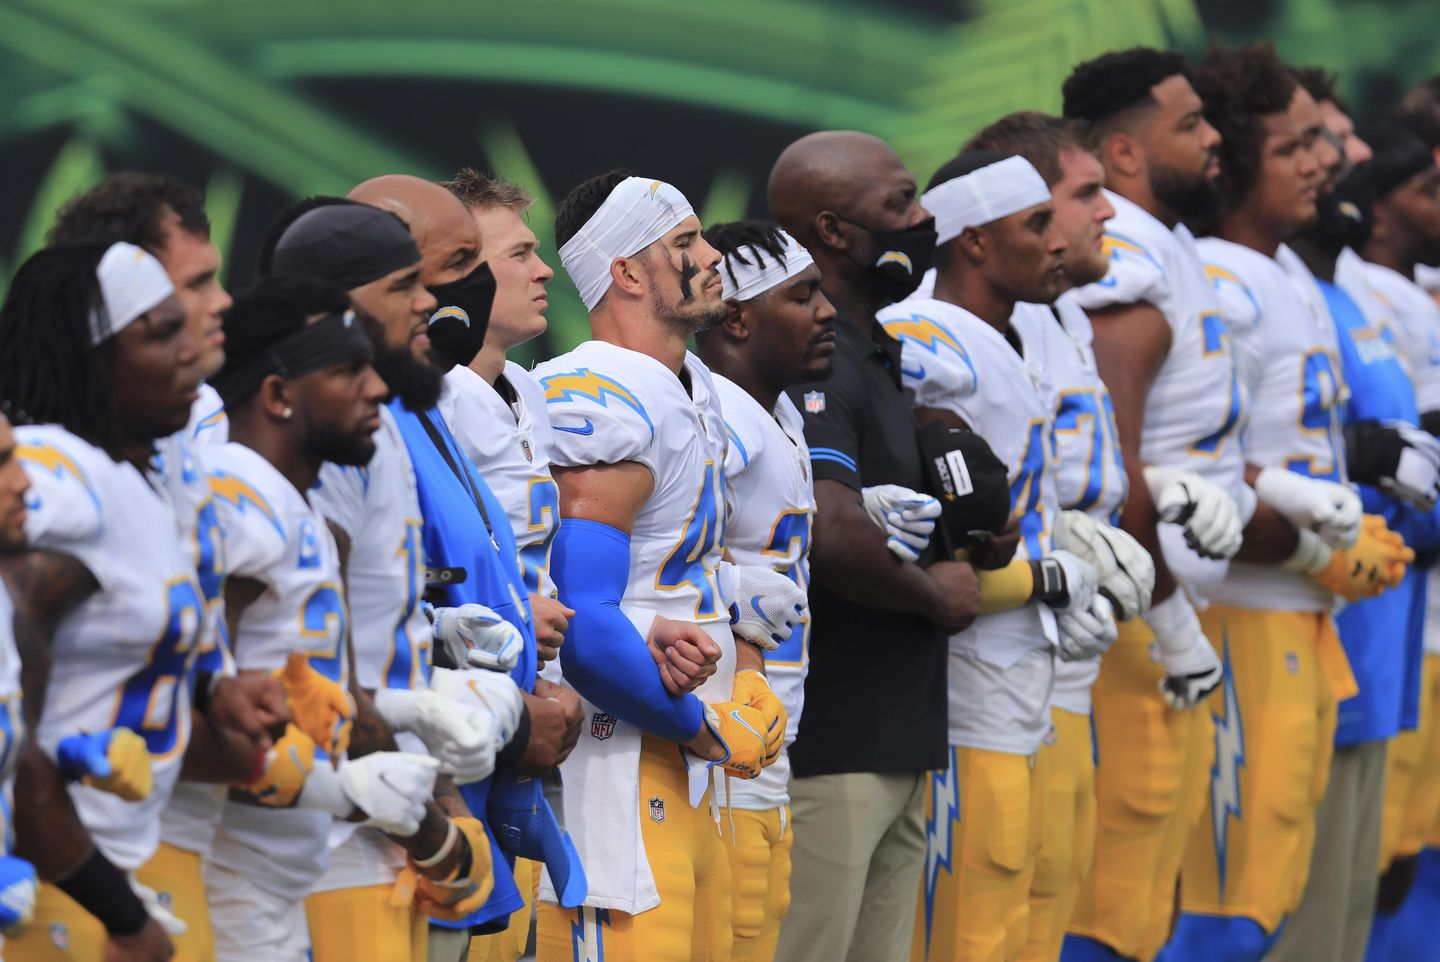 NFL to play Black national anthem before all major 2021 games, events: Report